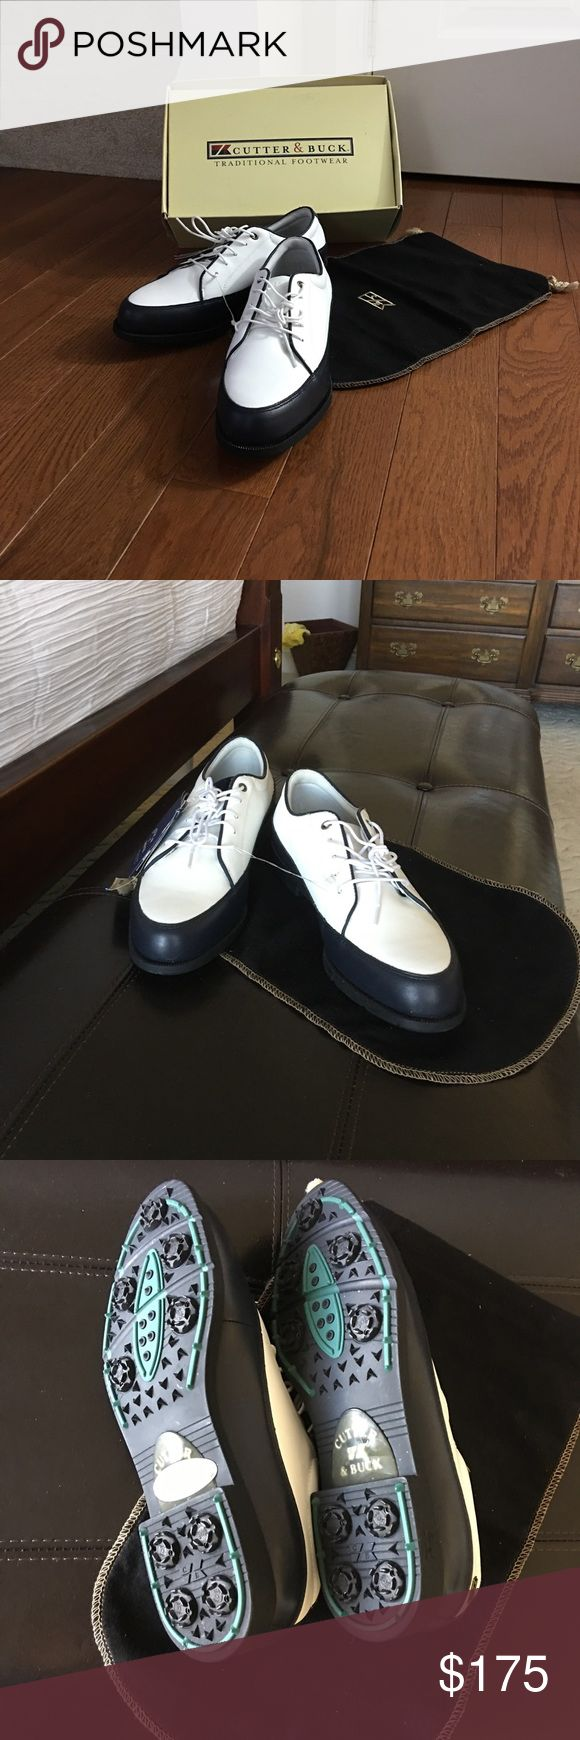 Women's Cutter & Buck Golf Shoes NWT women's navy and white golf shoes. Very good quality shoe; a favorite brand amongst golf professionals. Never worn or used. Comes with dust bag and original box. Cutter & Buck Shoes Athletic Shoes